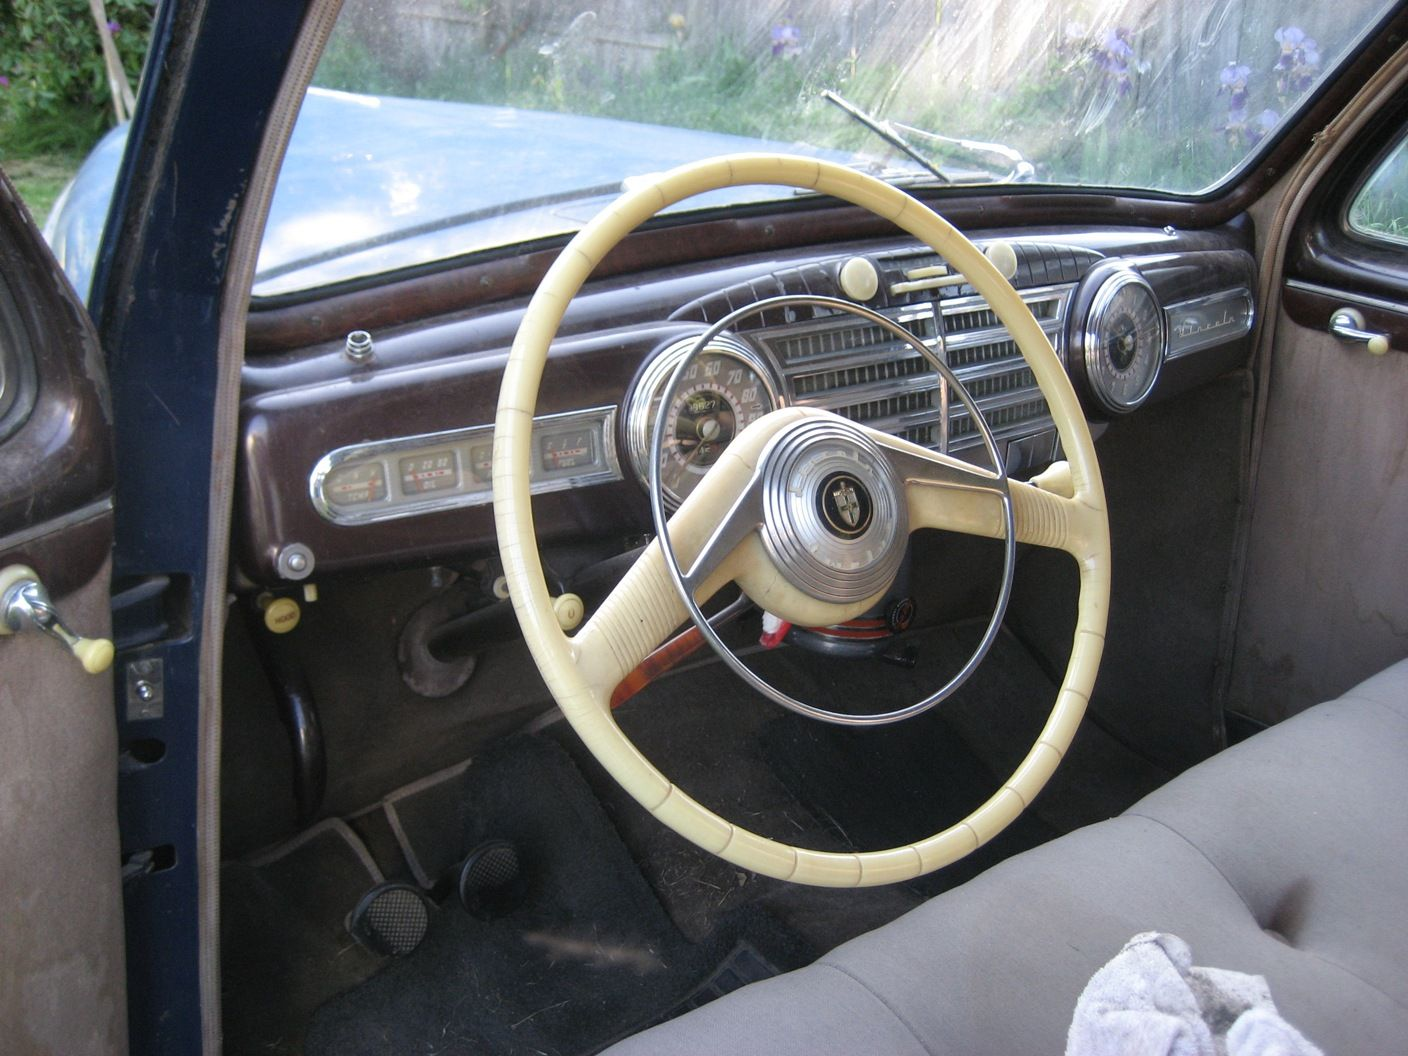 1942 Lincoln Zephyr Dash Old Classic Cars Lincoln Cars American Classic Cars